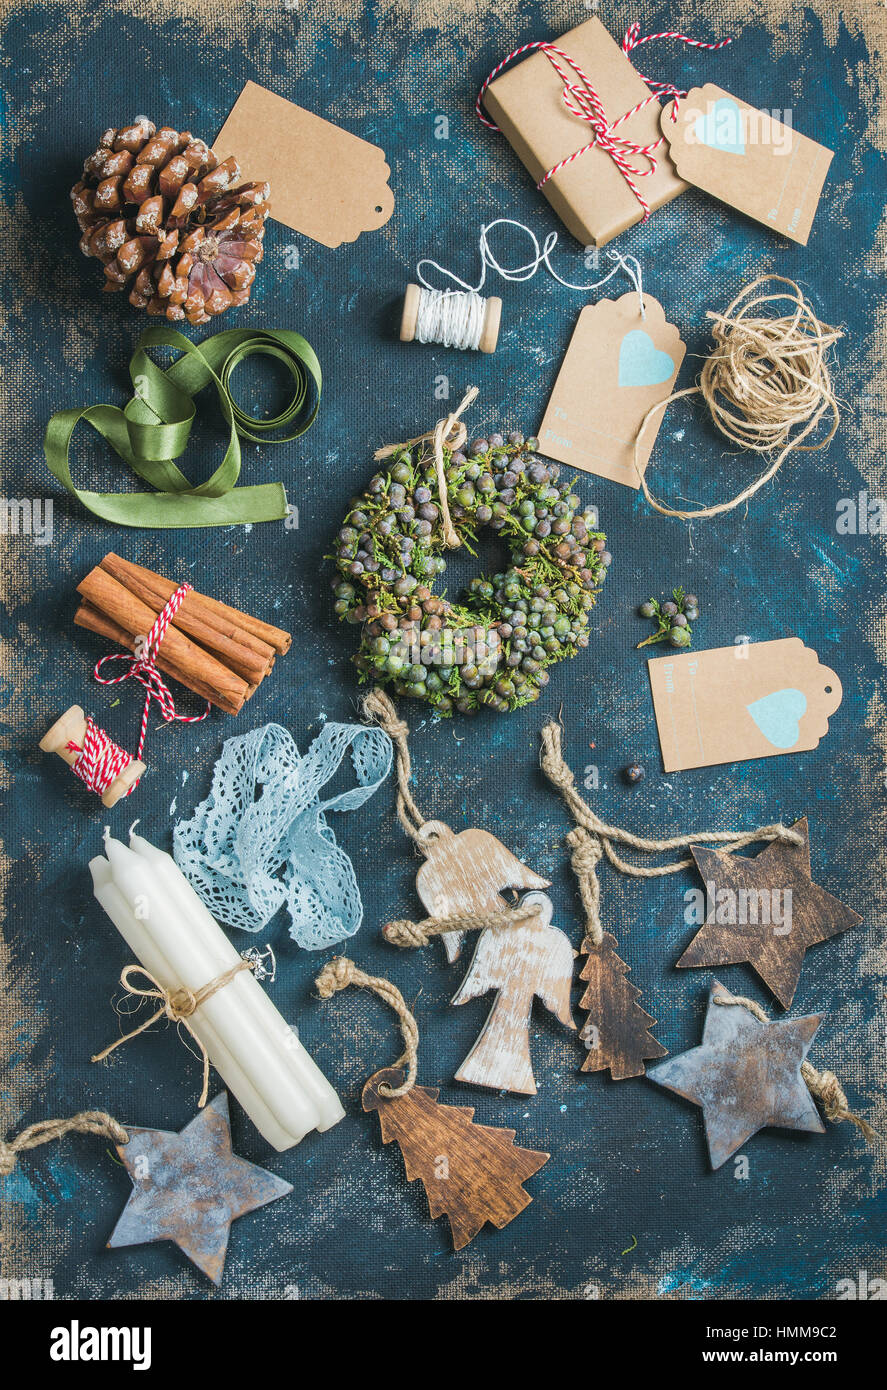 Christmas related objects on shabby table background, top view - Stock Image